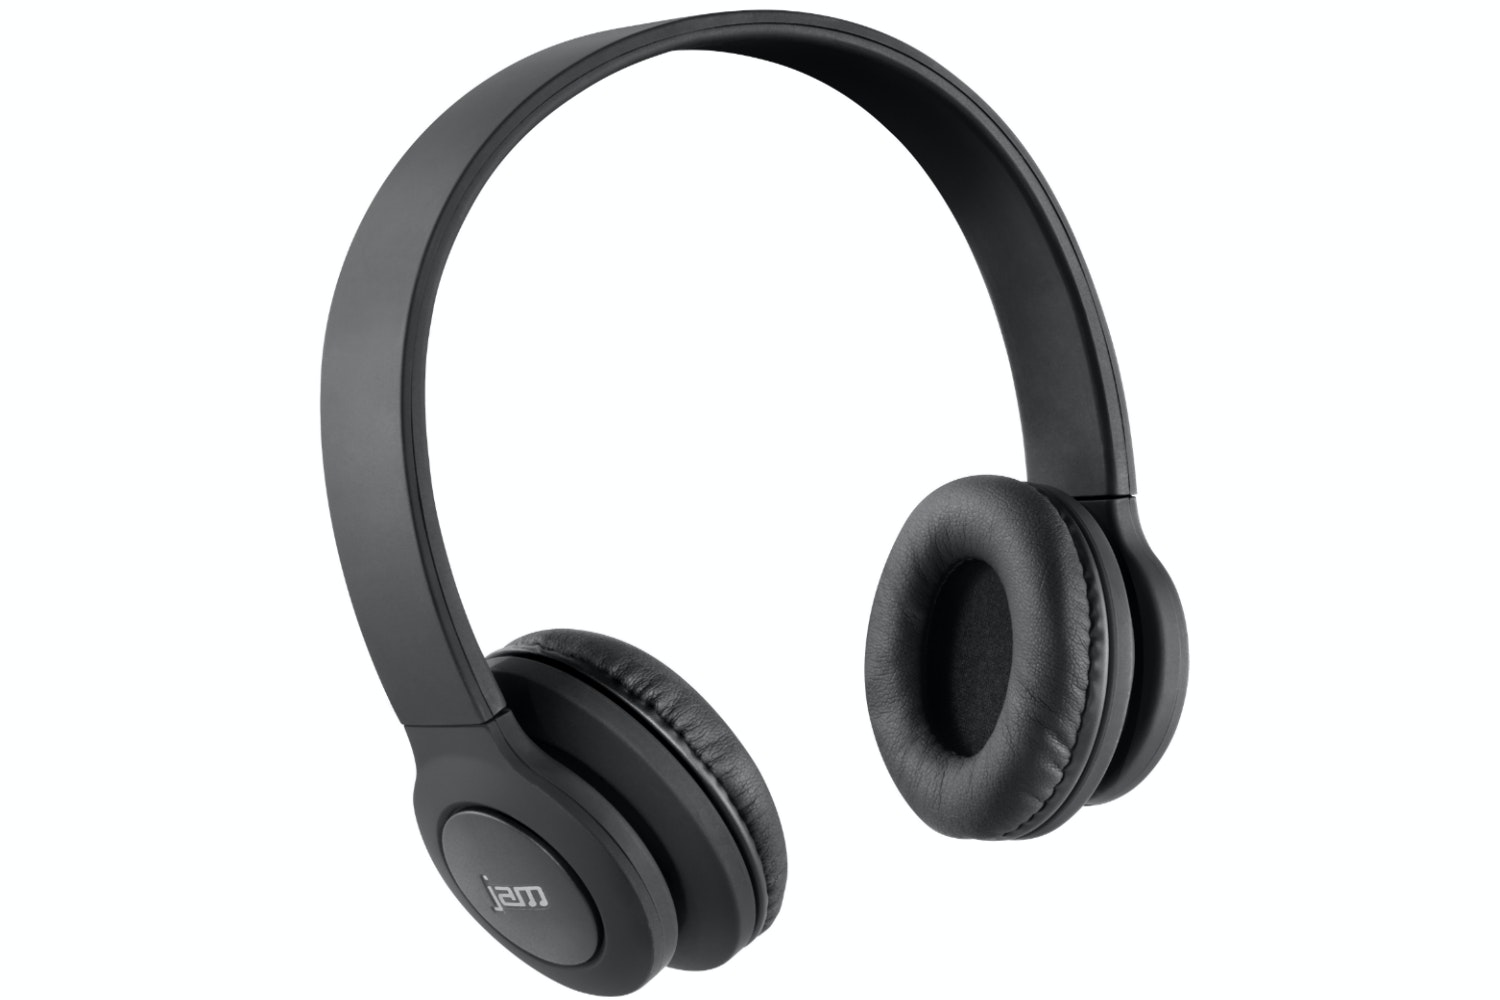 JAM Transit Wireless headphones